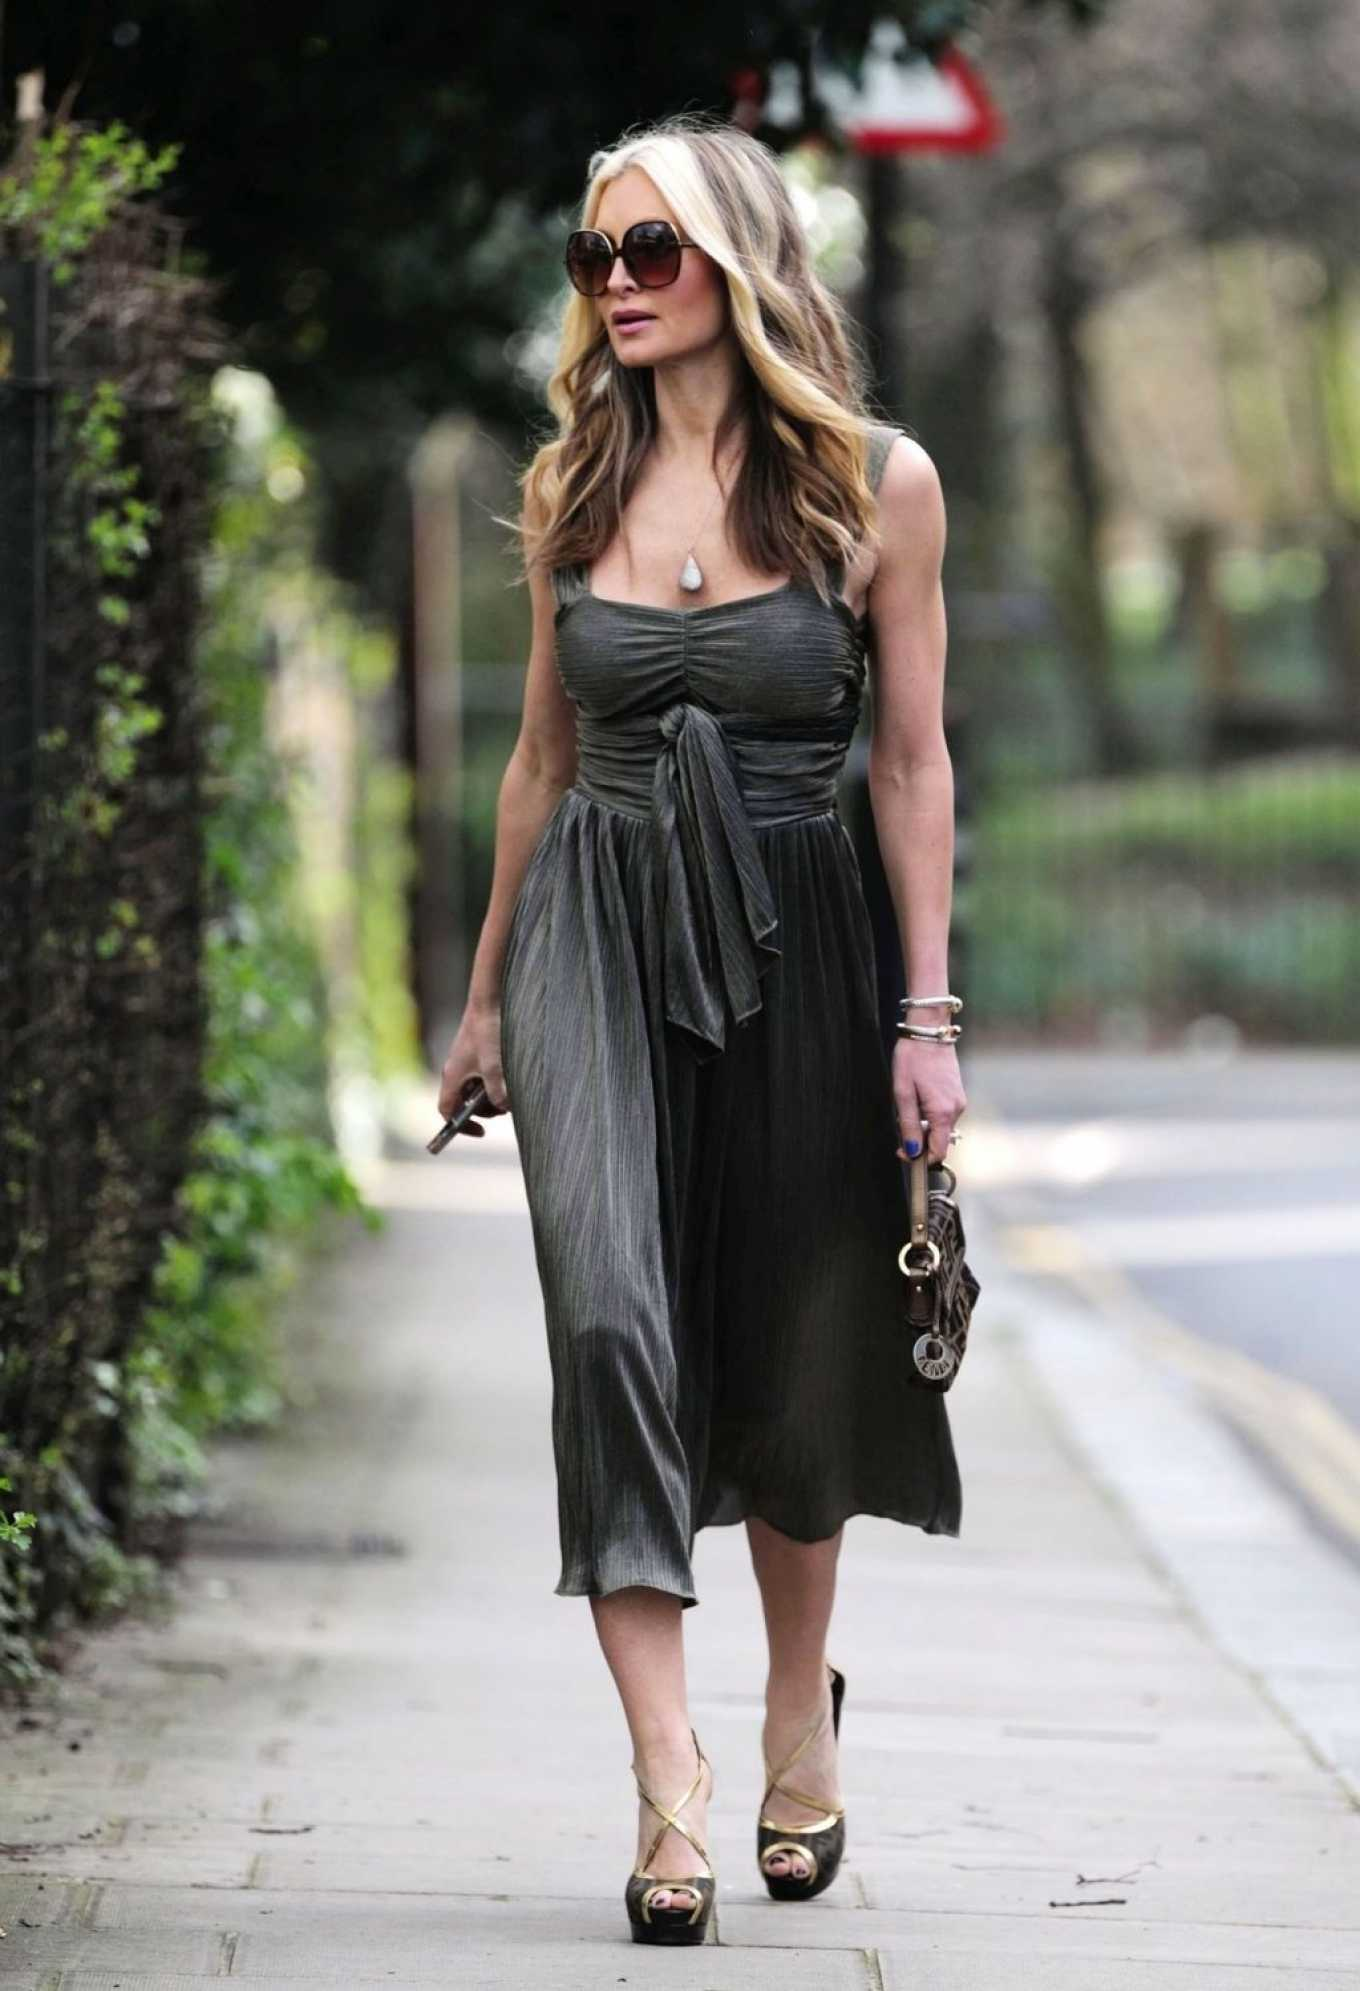 Caprice Bourret 2020 : Caprice Bourret – Out in London-08